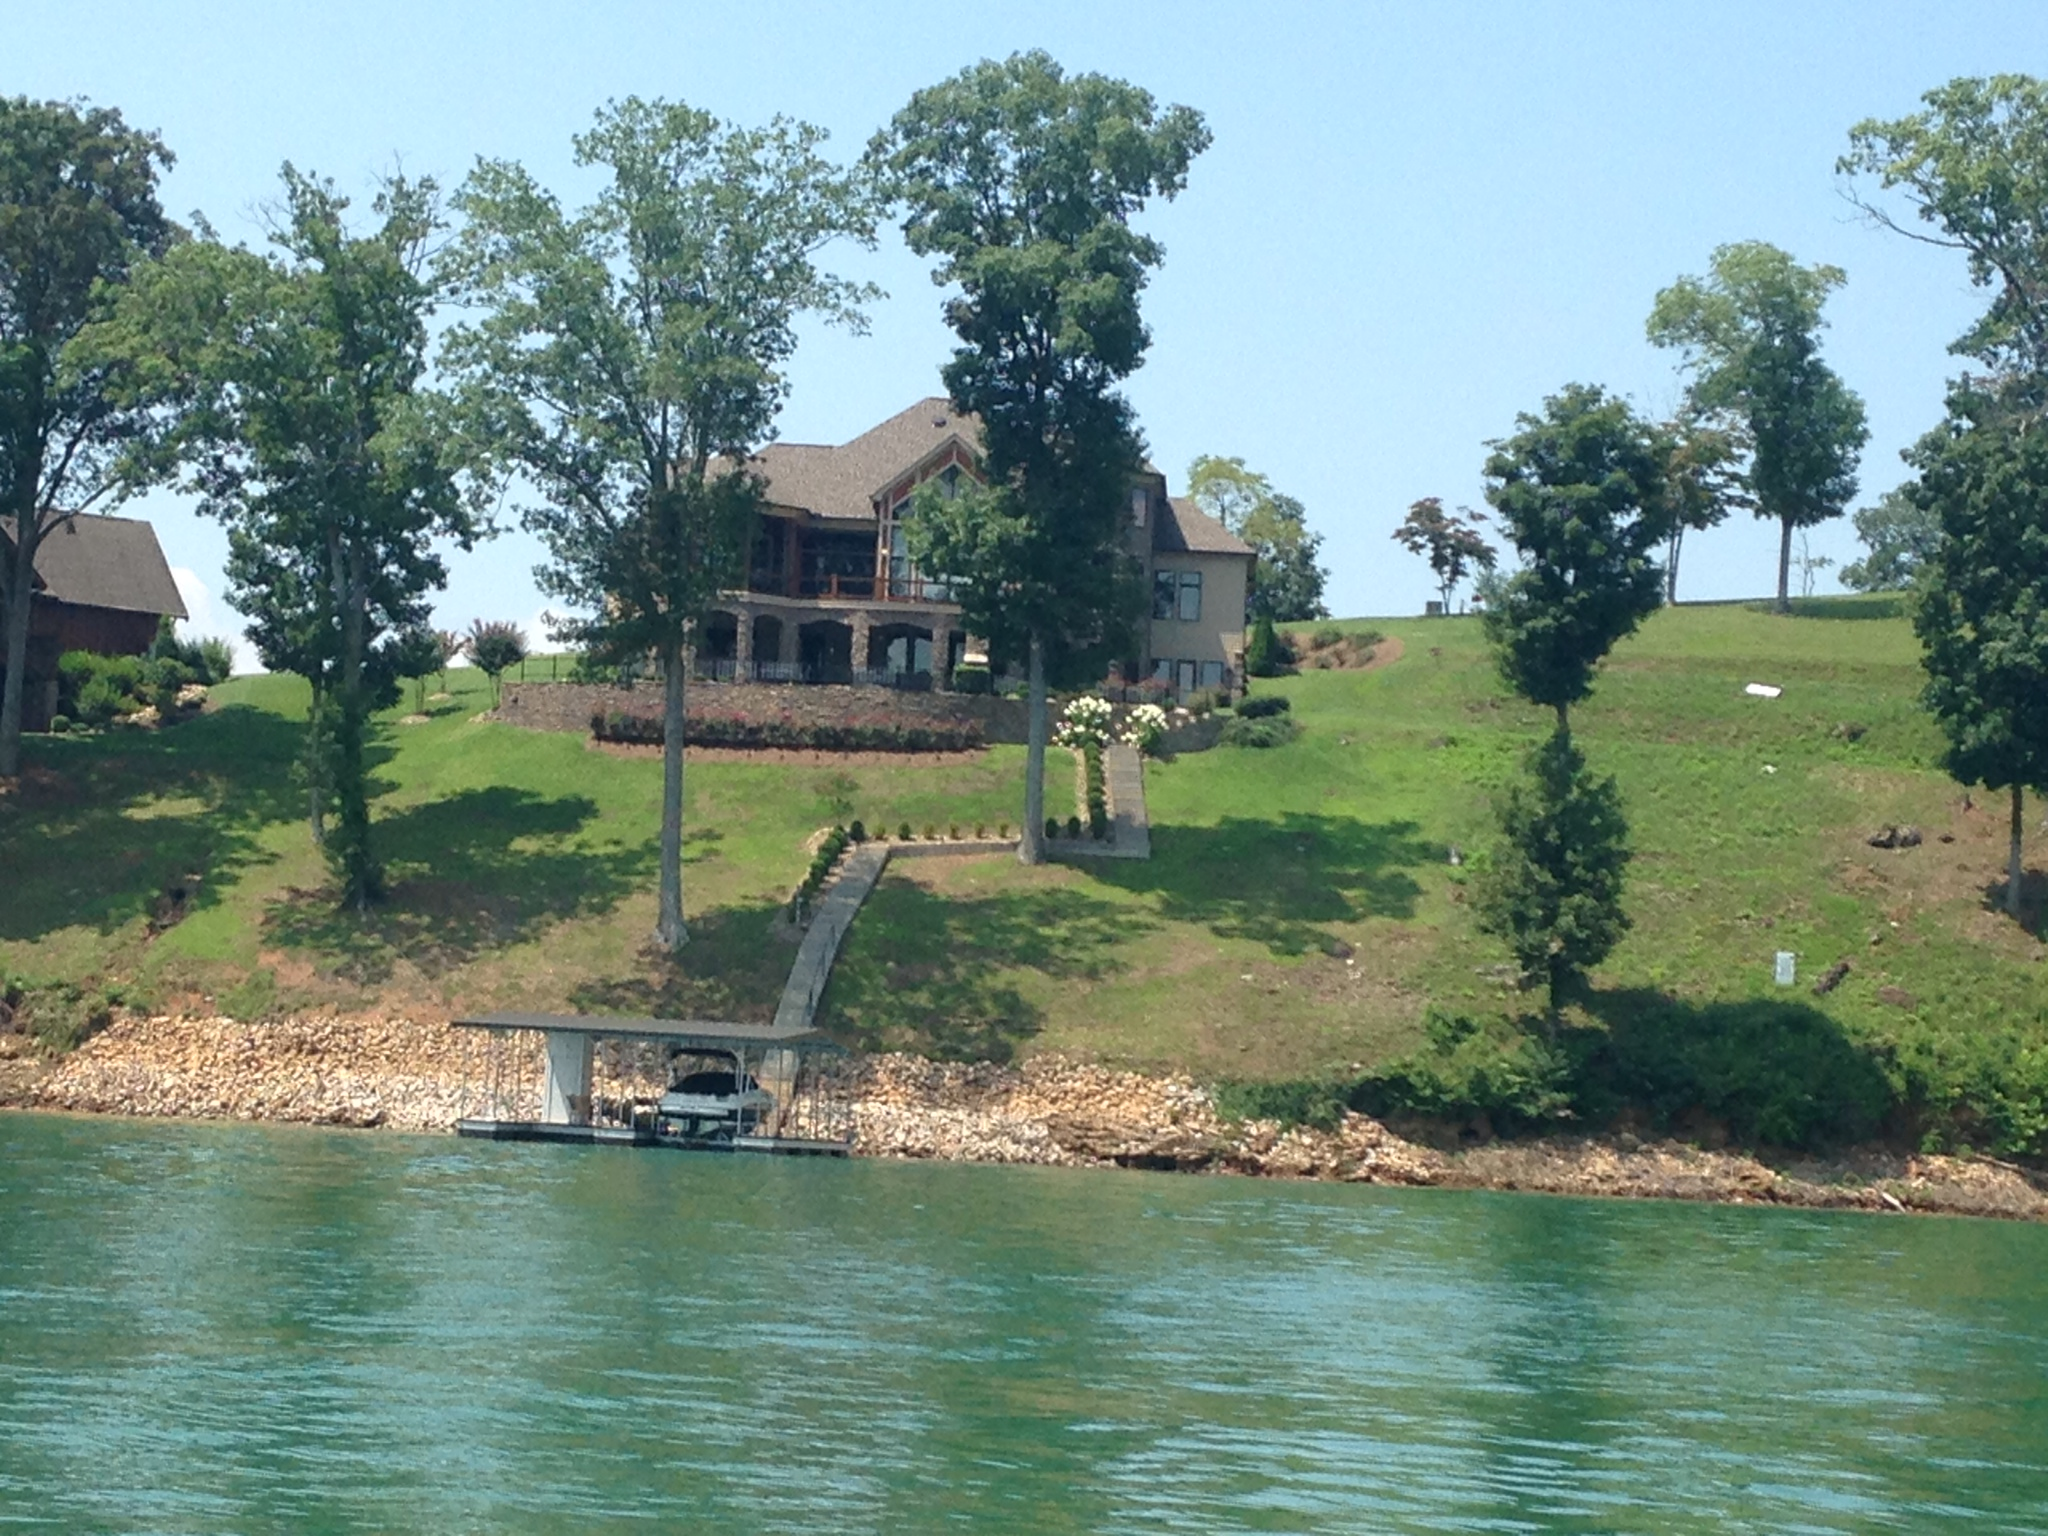 The peninsula luxury lake living norris lake norris lake for Norris lake fishing report